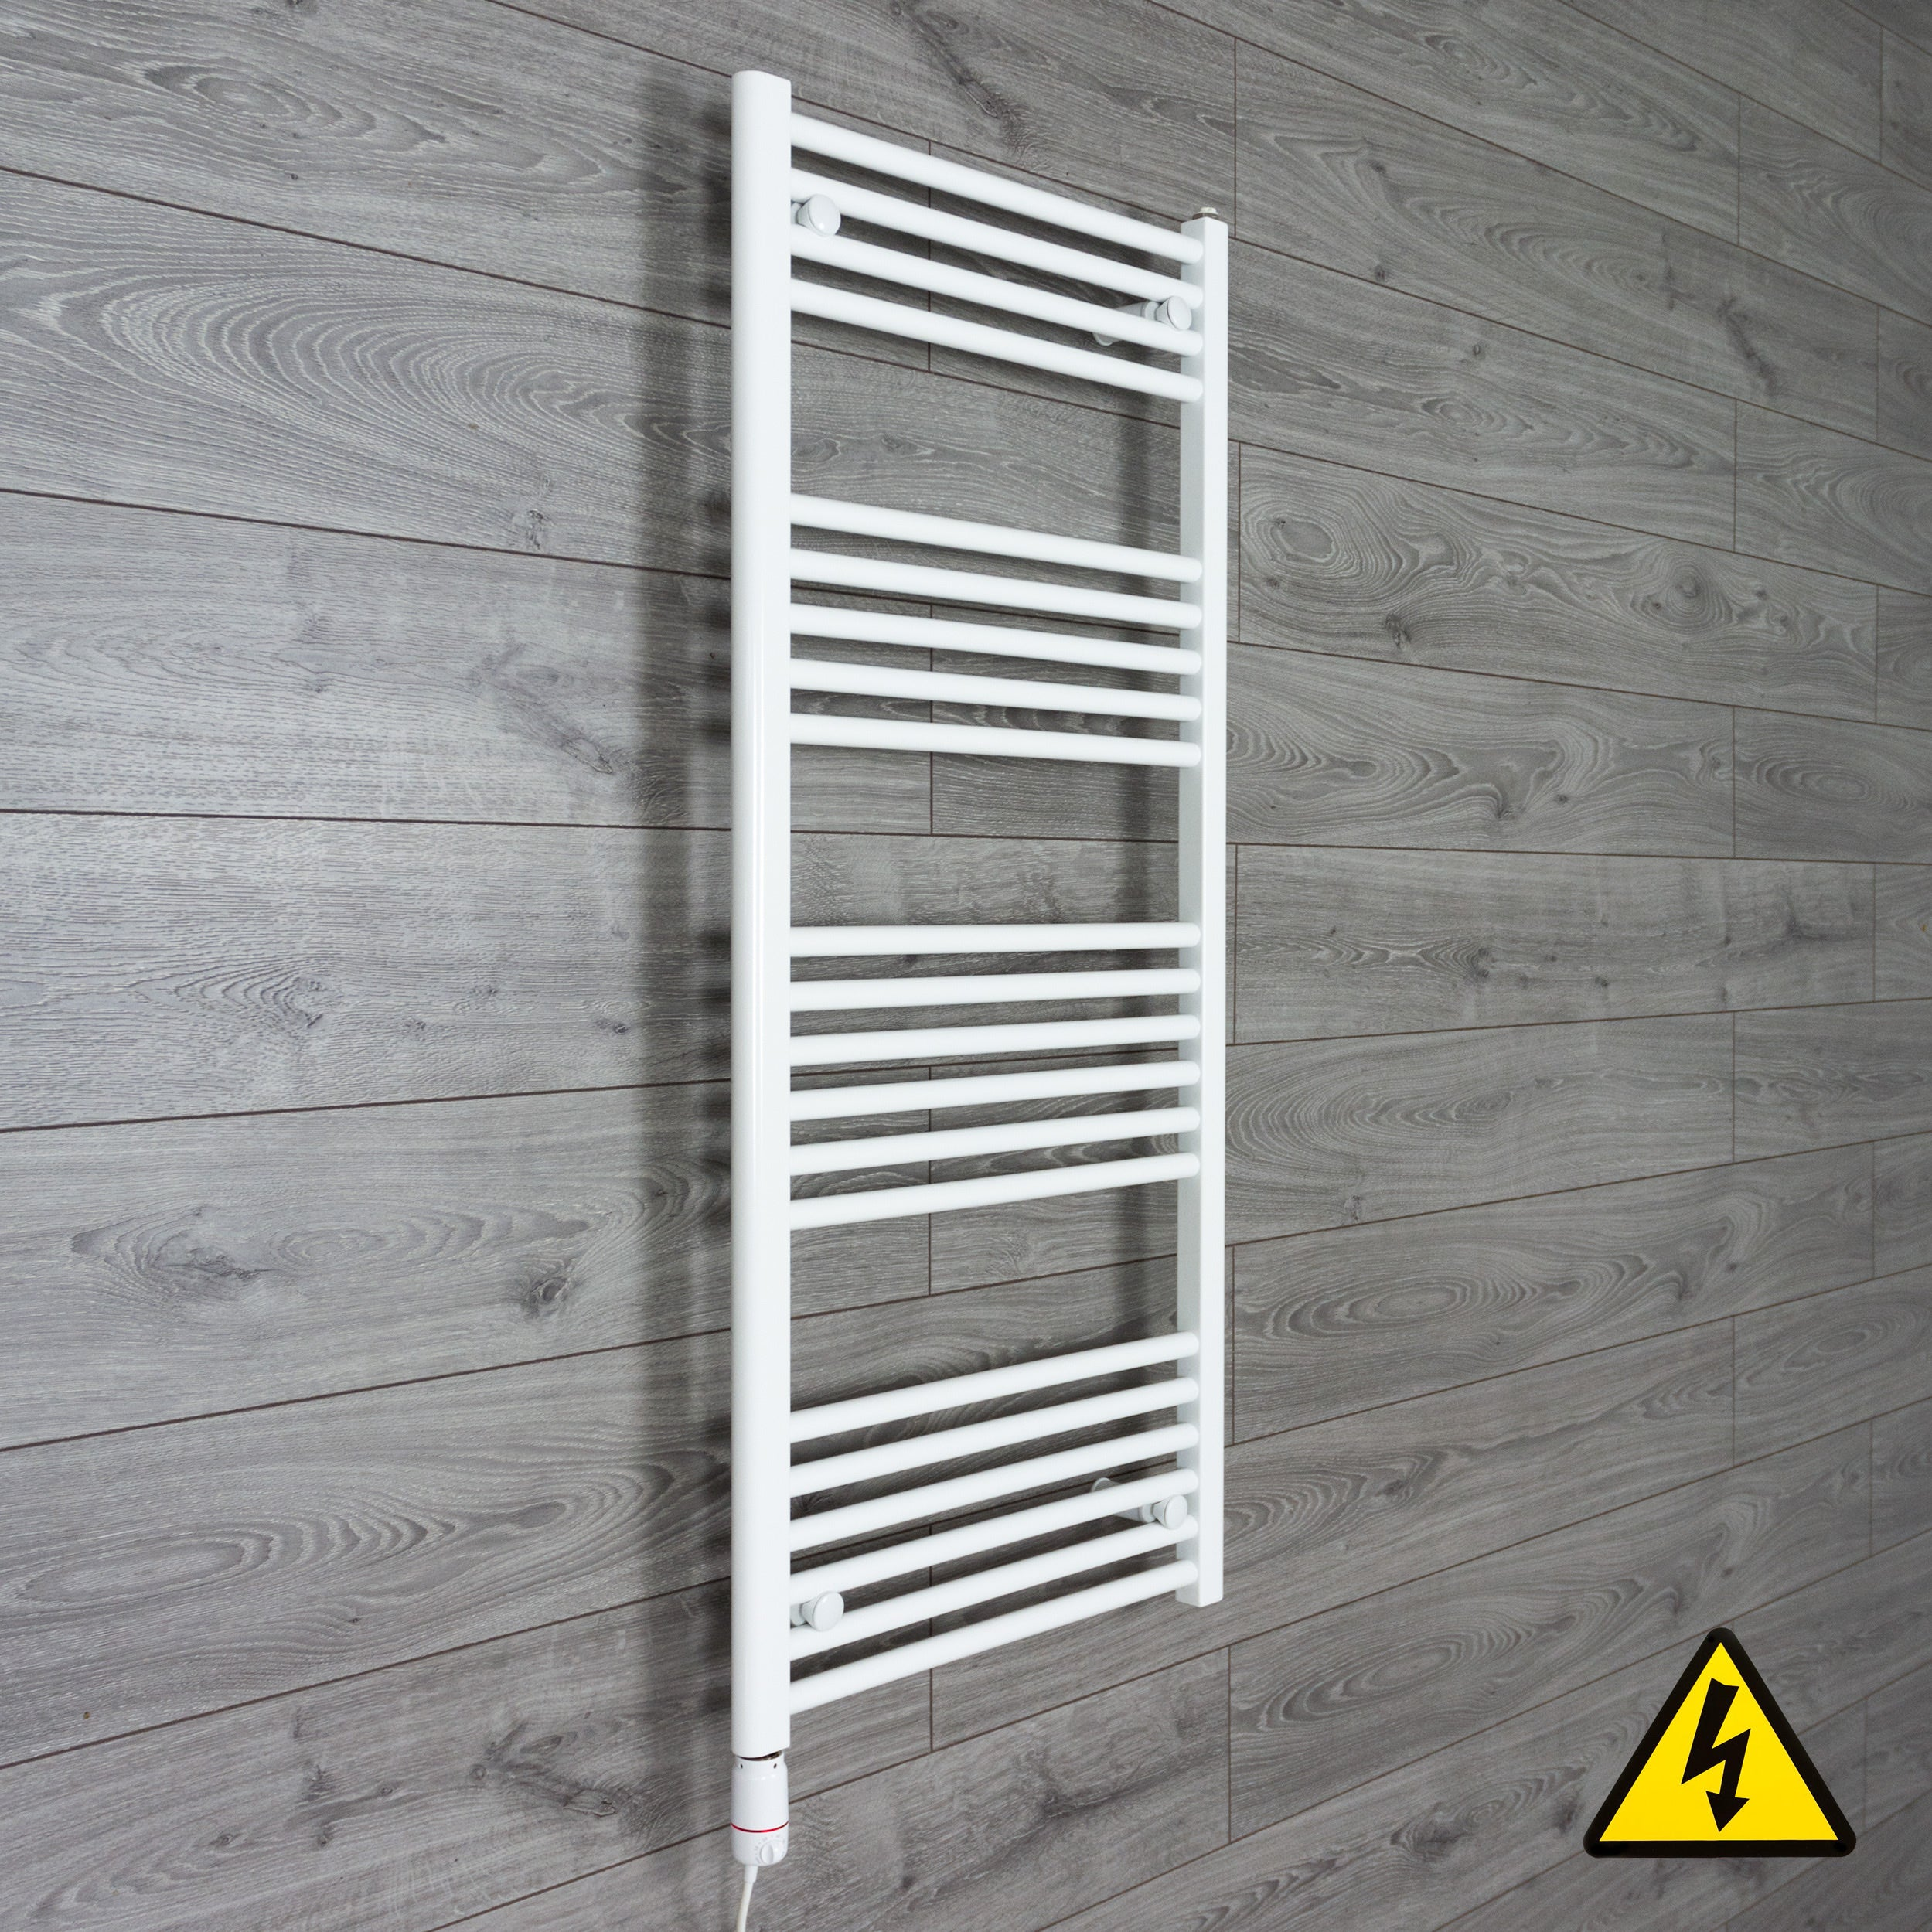 400mm Wide 1200mm High Flat White Heated Towel Rail Radiator Gas or Electric,Pre-Filled Thermostatic Element